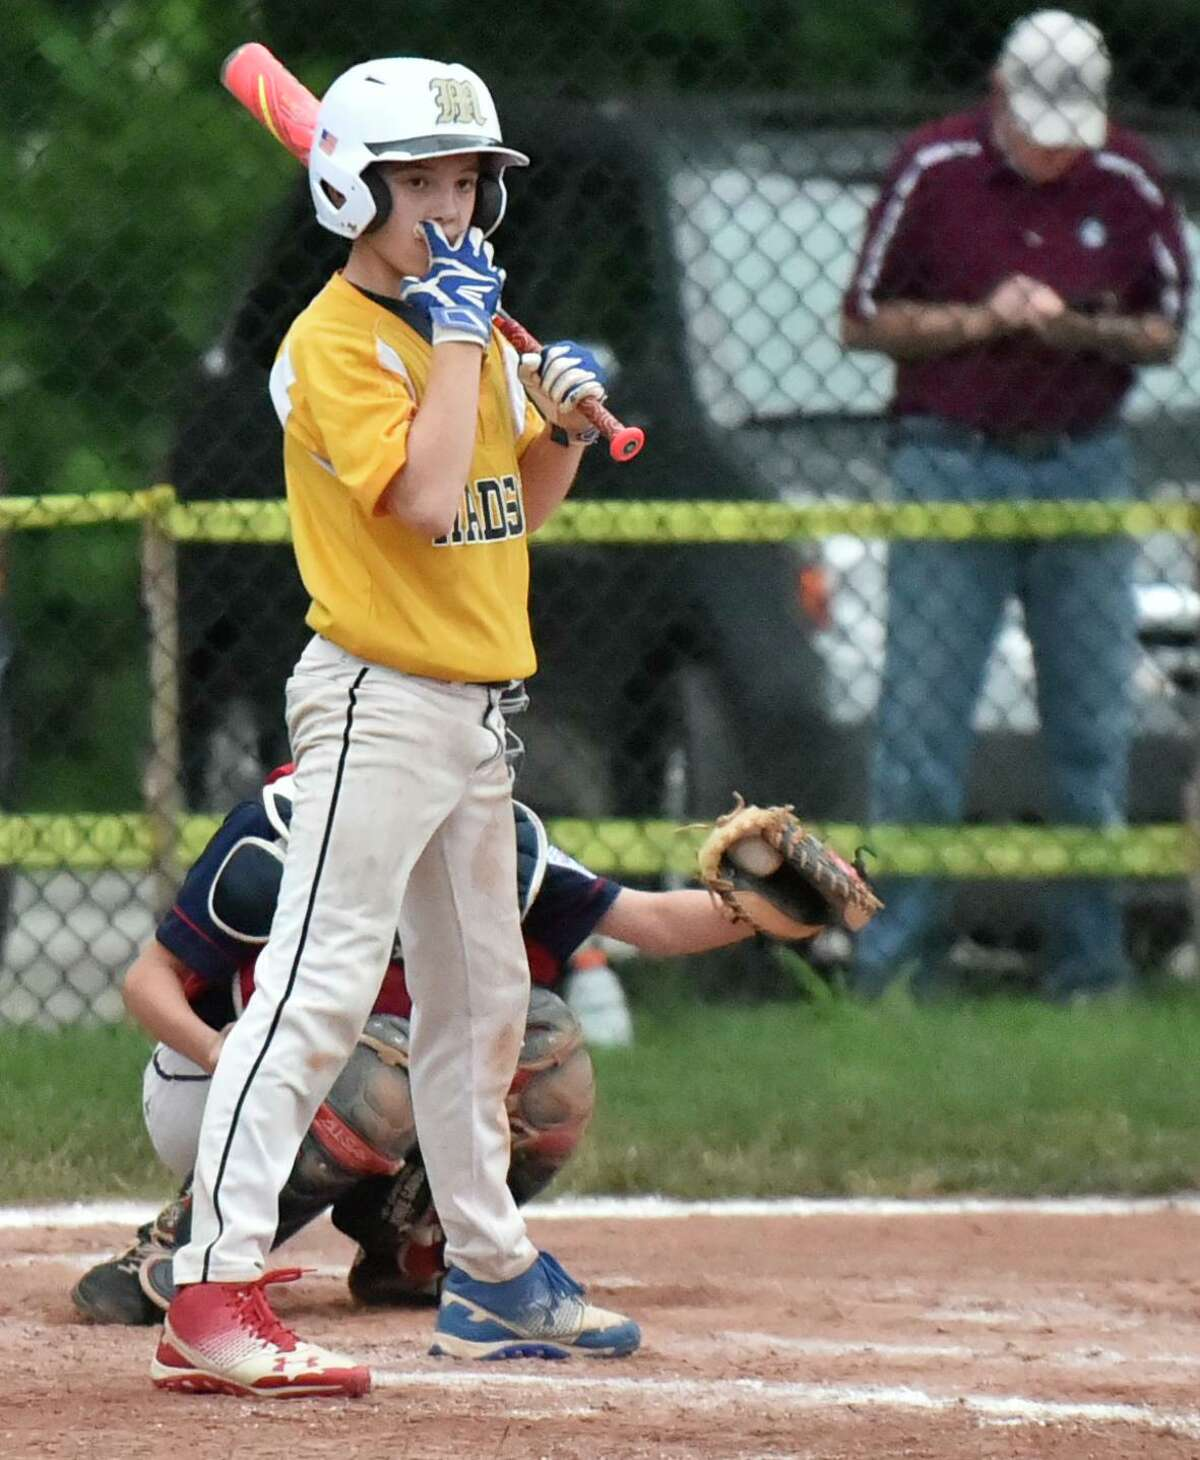 Willimantic , Connecticut -Friday, July 26, 2019: Max Sinoway North Haven Little League team vs. Madison Little League during the State Championship Final Wednesday at the Willimantic Little League Lower Legion Field in Willimantic . The winner goes to Bristol Connecticut for the New England Regional Playoffs. Final Score: Madison defeated North Haven 6-0.